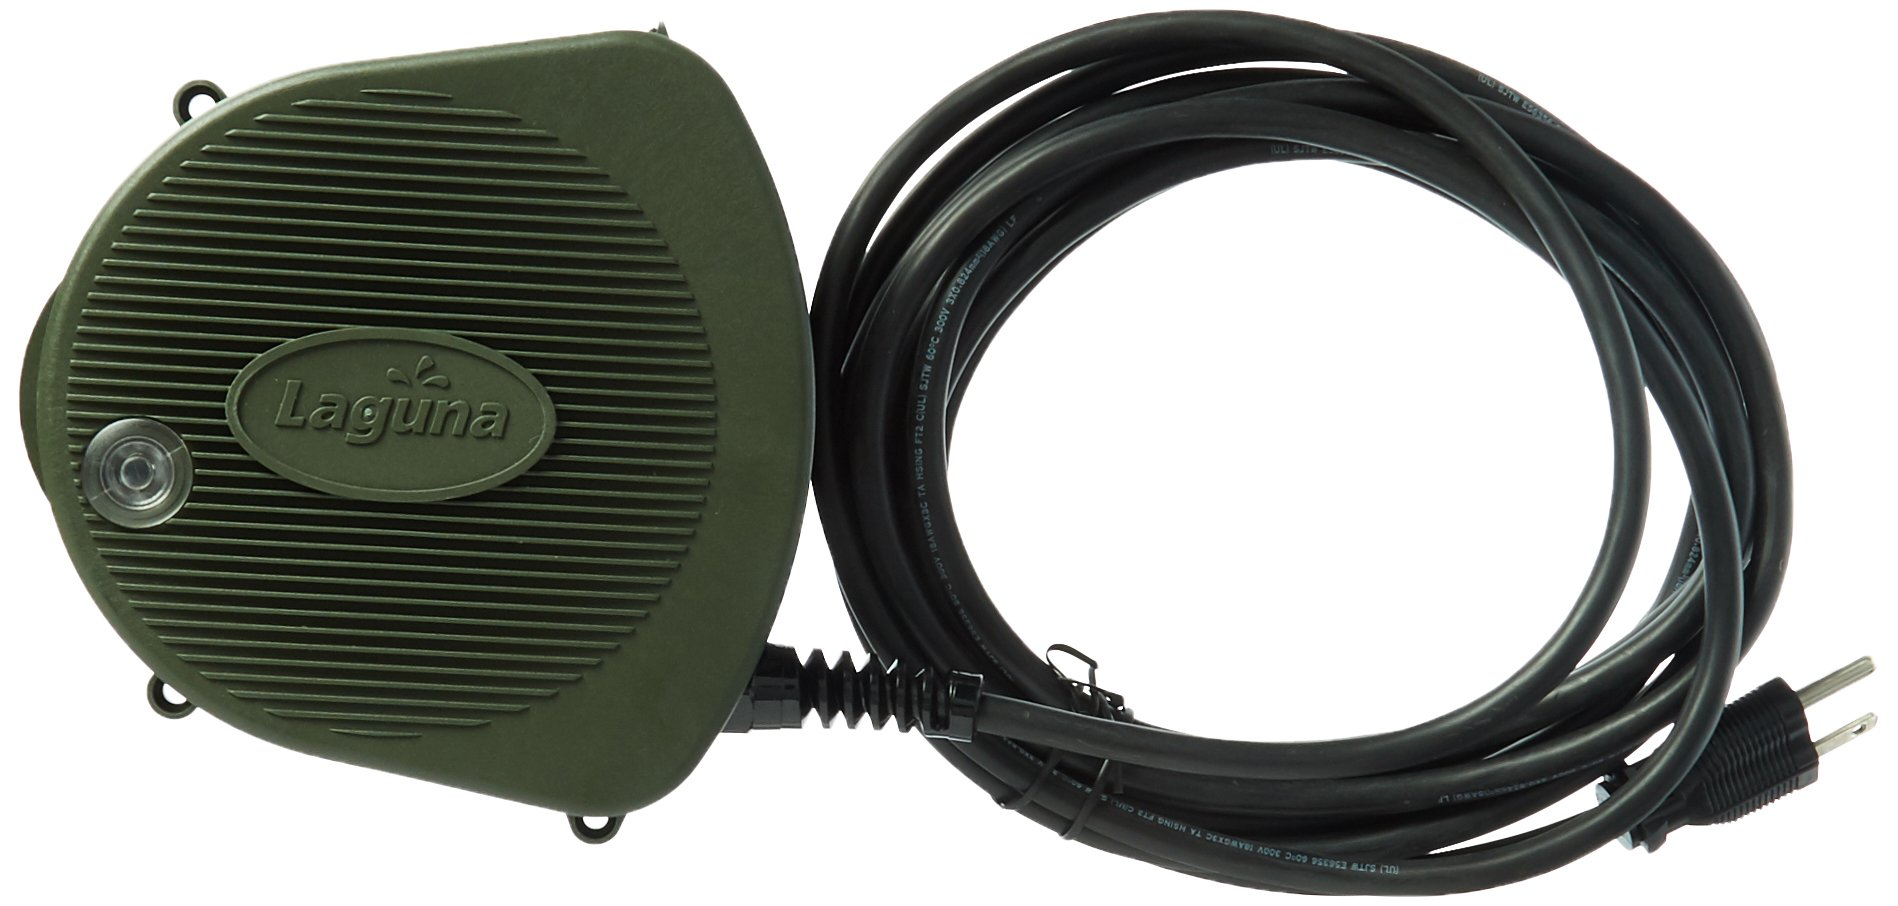 Laguna Head Replacement for Pressure-Flo 700 UVC Pressurized Pond Filter by Laguna